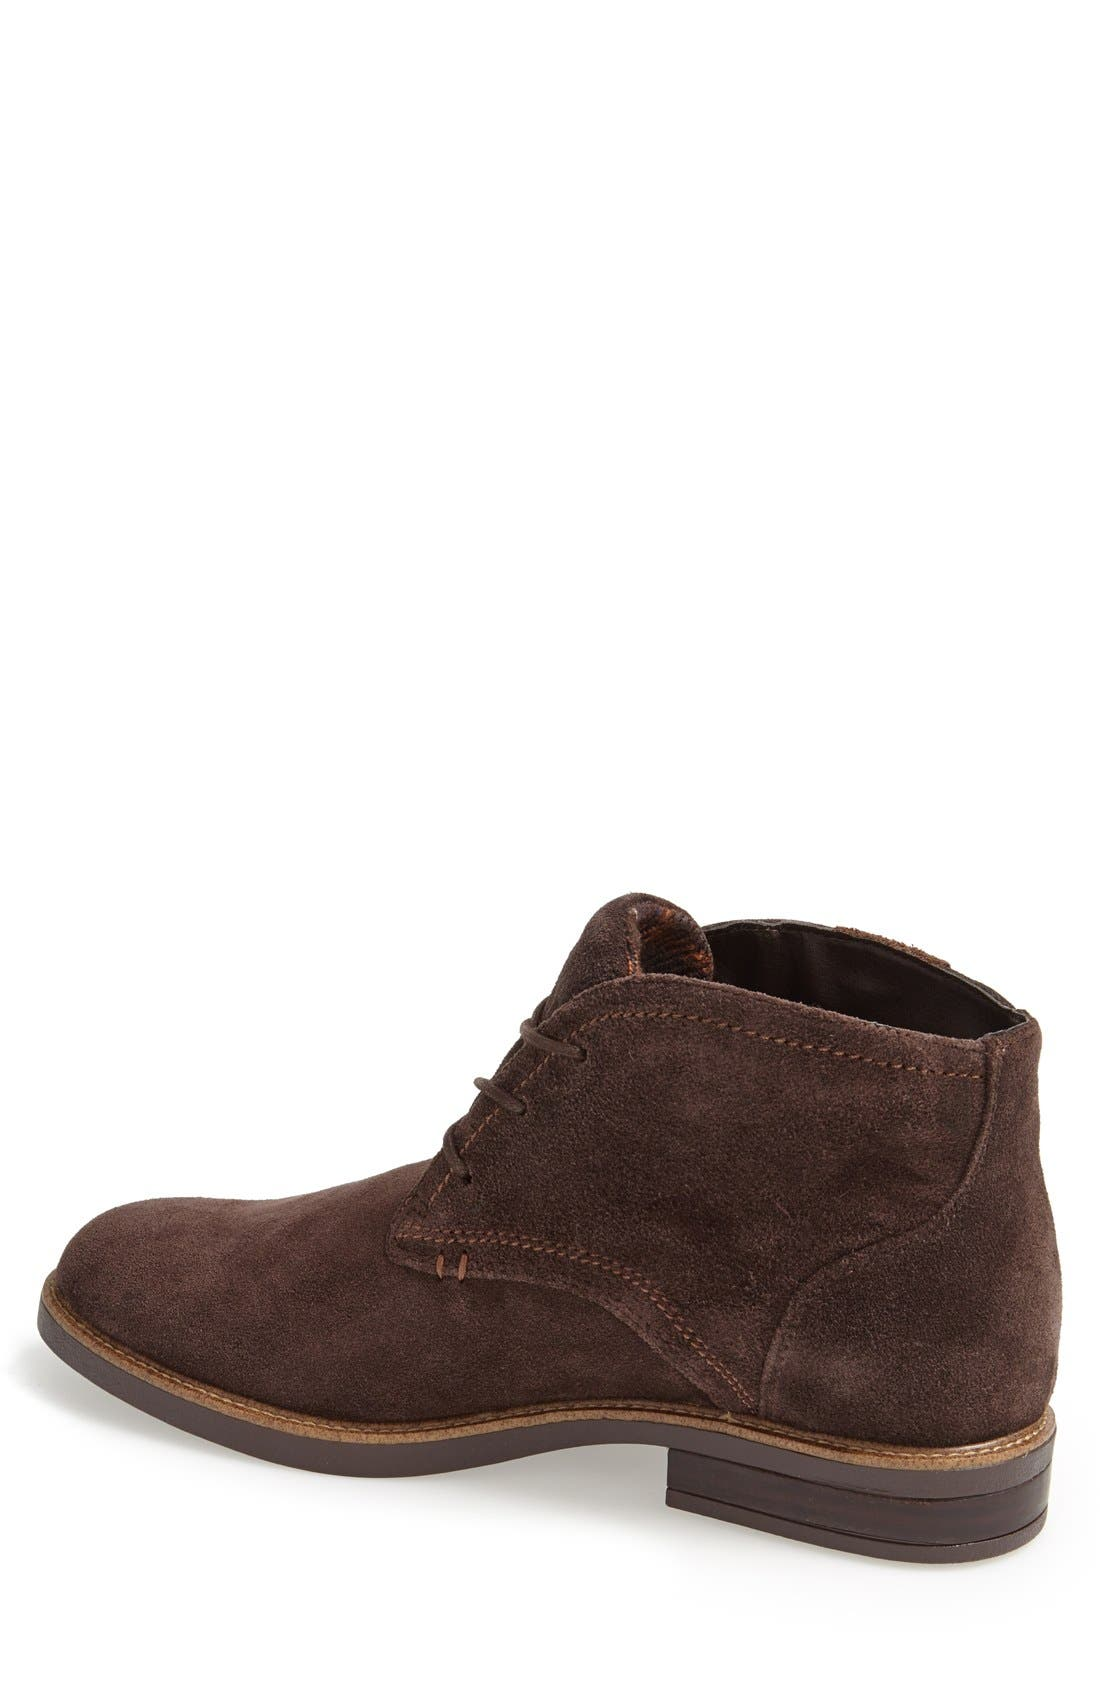 BLONDO,                             Gustave Waterproof Chukka Boot,                             Alternate thumbnail 2, color,                             CAFE